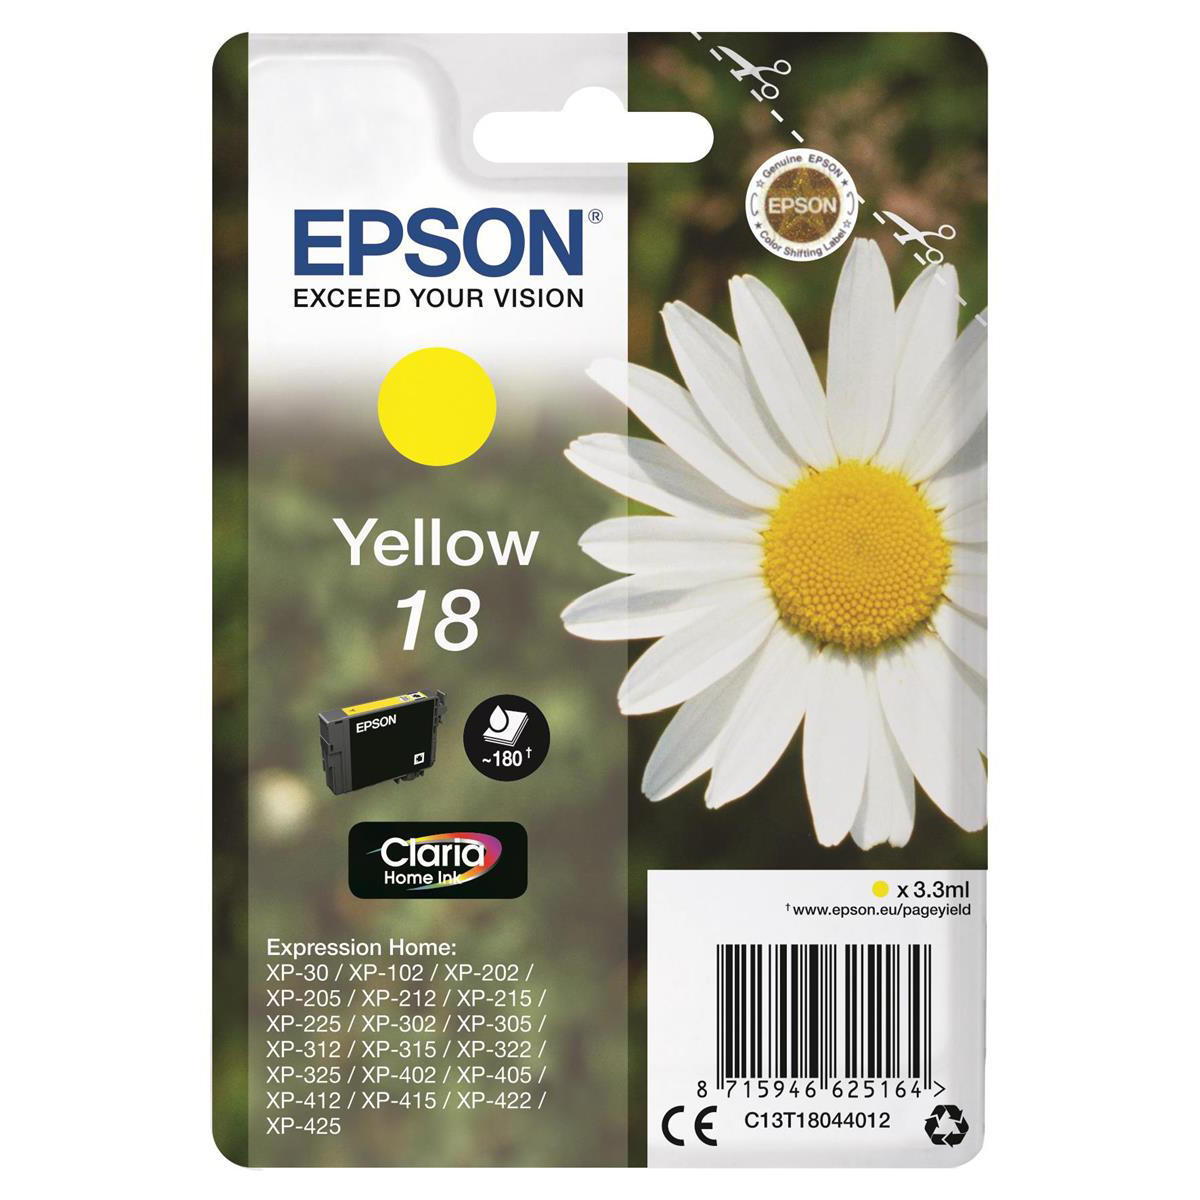 Epson 18 Inkjet Cartridge Daisy Page Life 180pp 3.3ml Yellow Ref C13T18044012